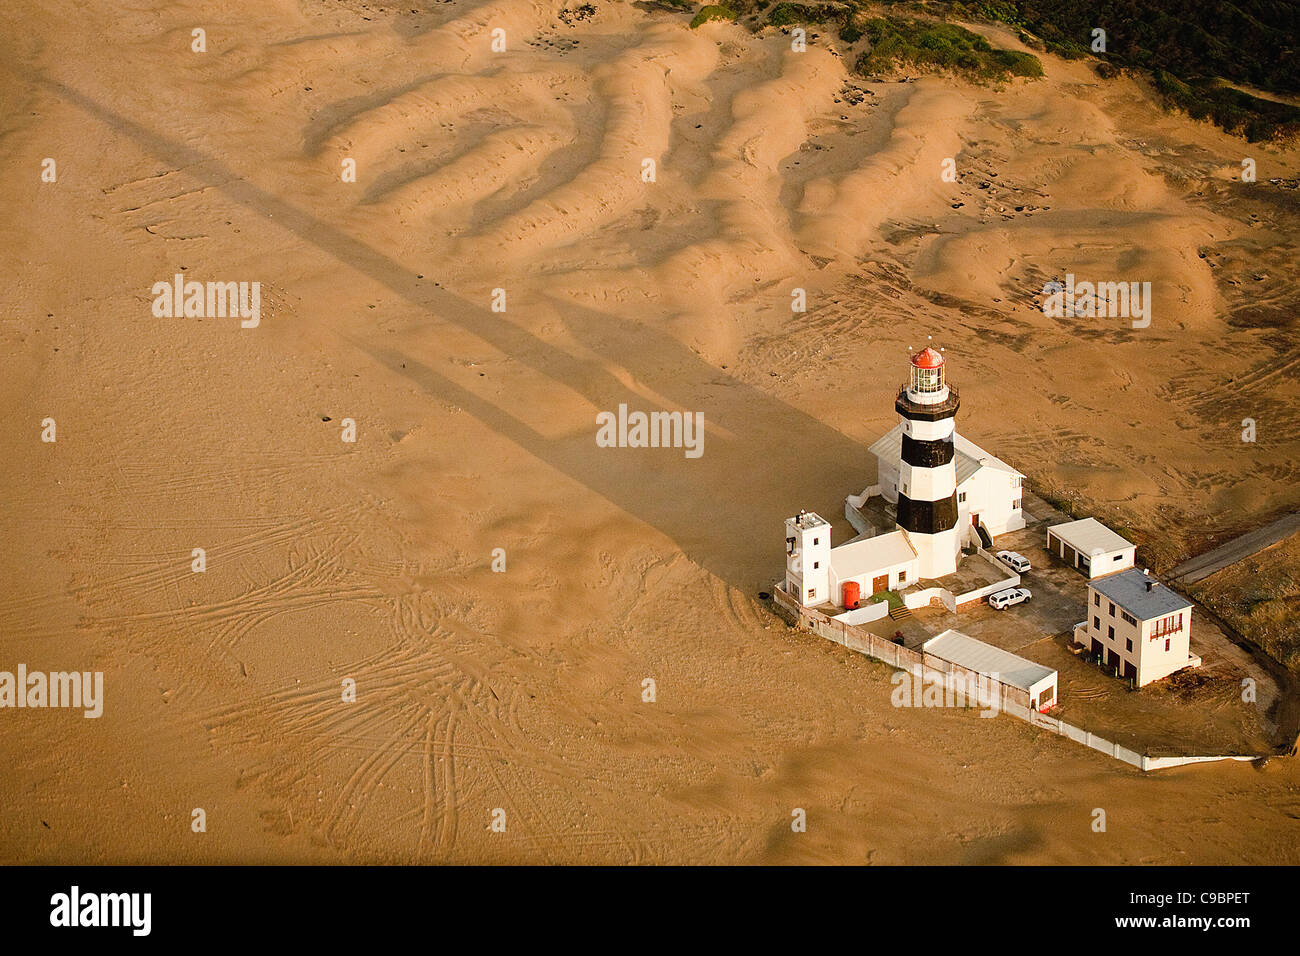 Aerial view of Cape Recife Lighthouse, Nelson Mandela Bay, Port Elizabeth, Eastern Cape Province, South Africa - Stock Image